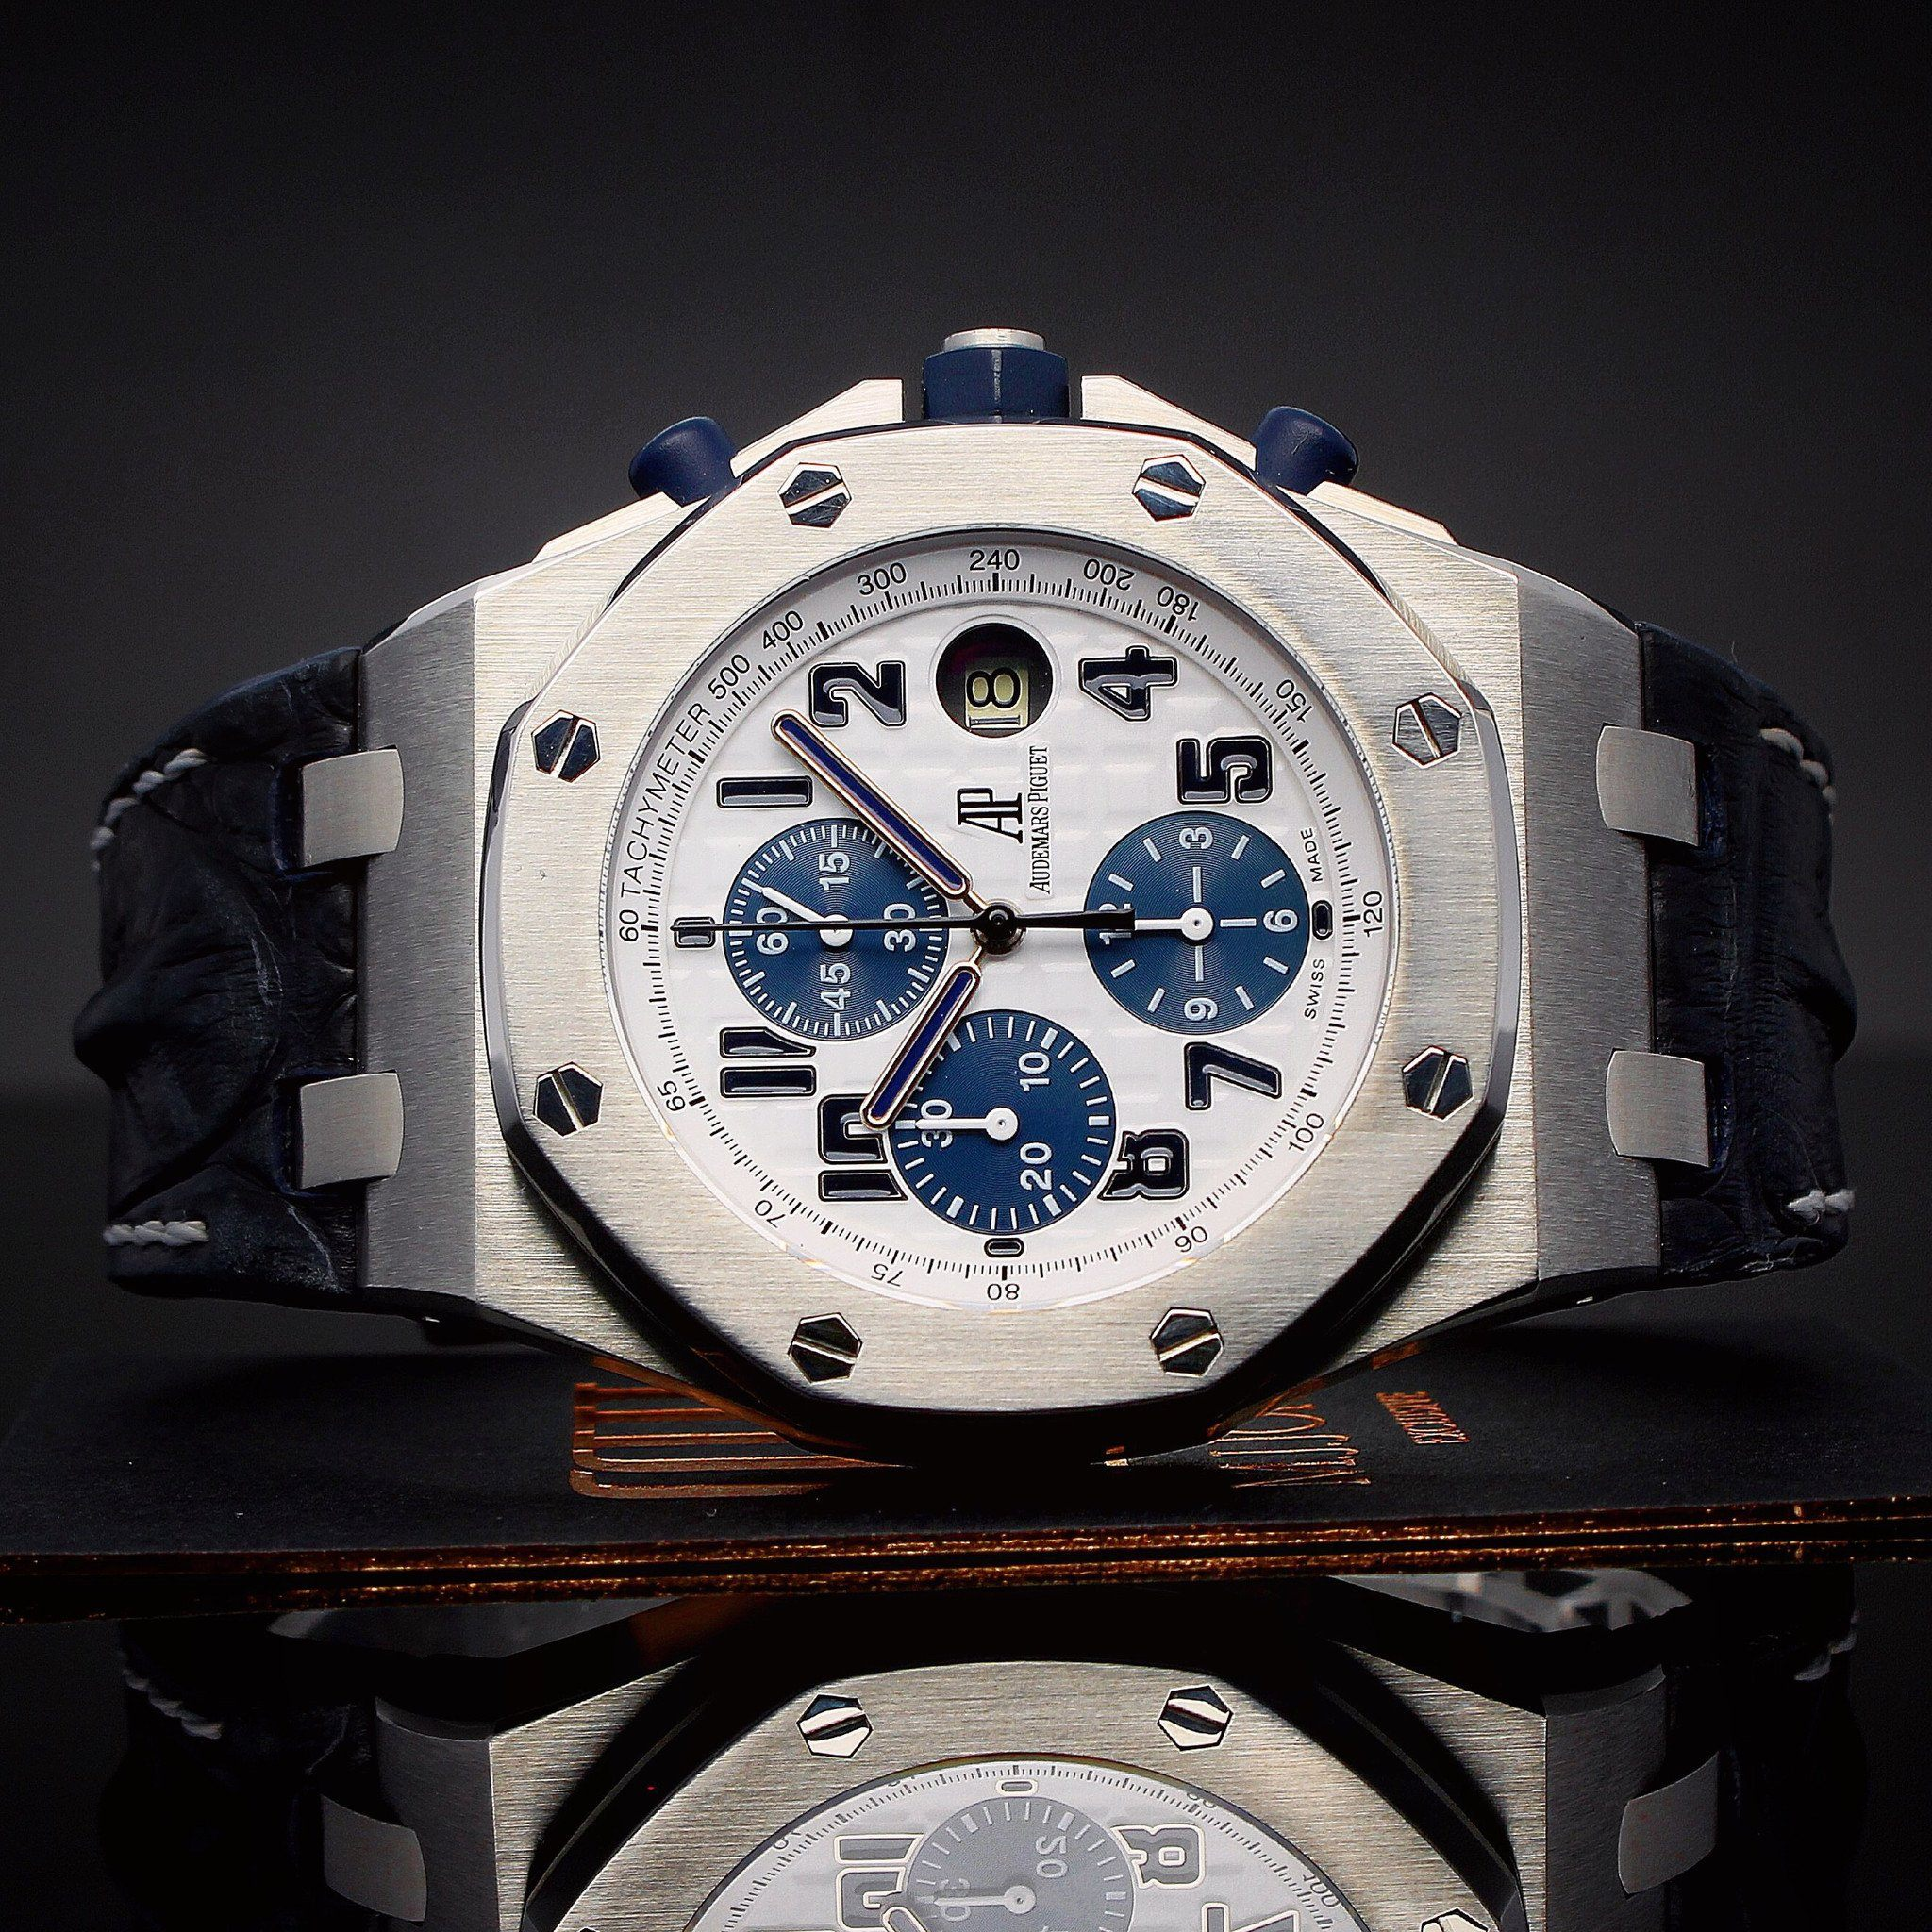 Audemars Piguet Royal Oak Offshore Navy replica